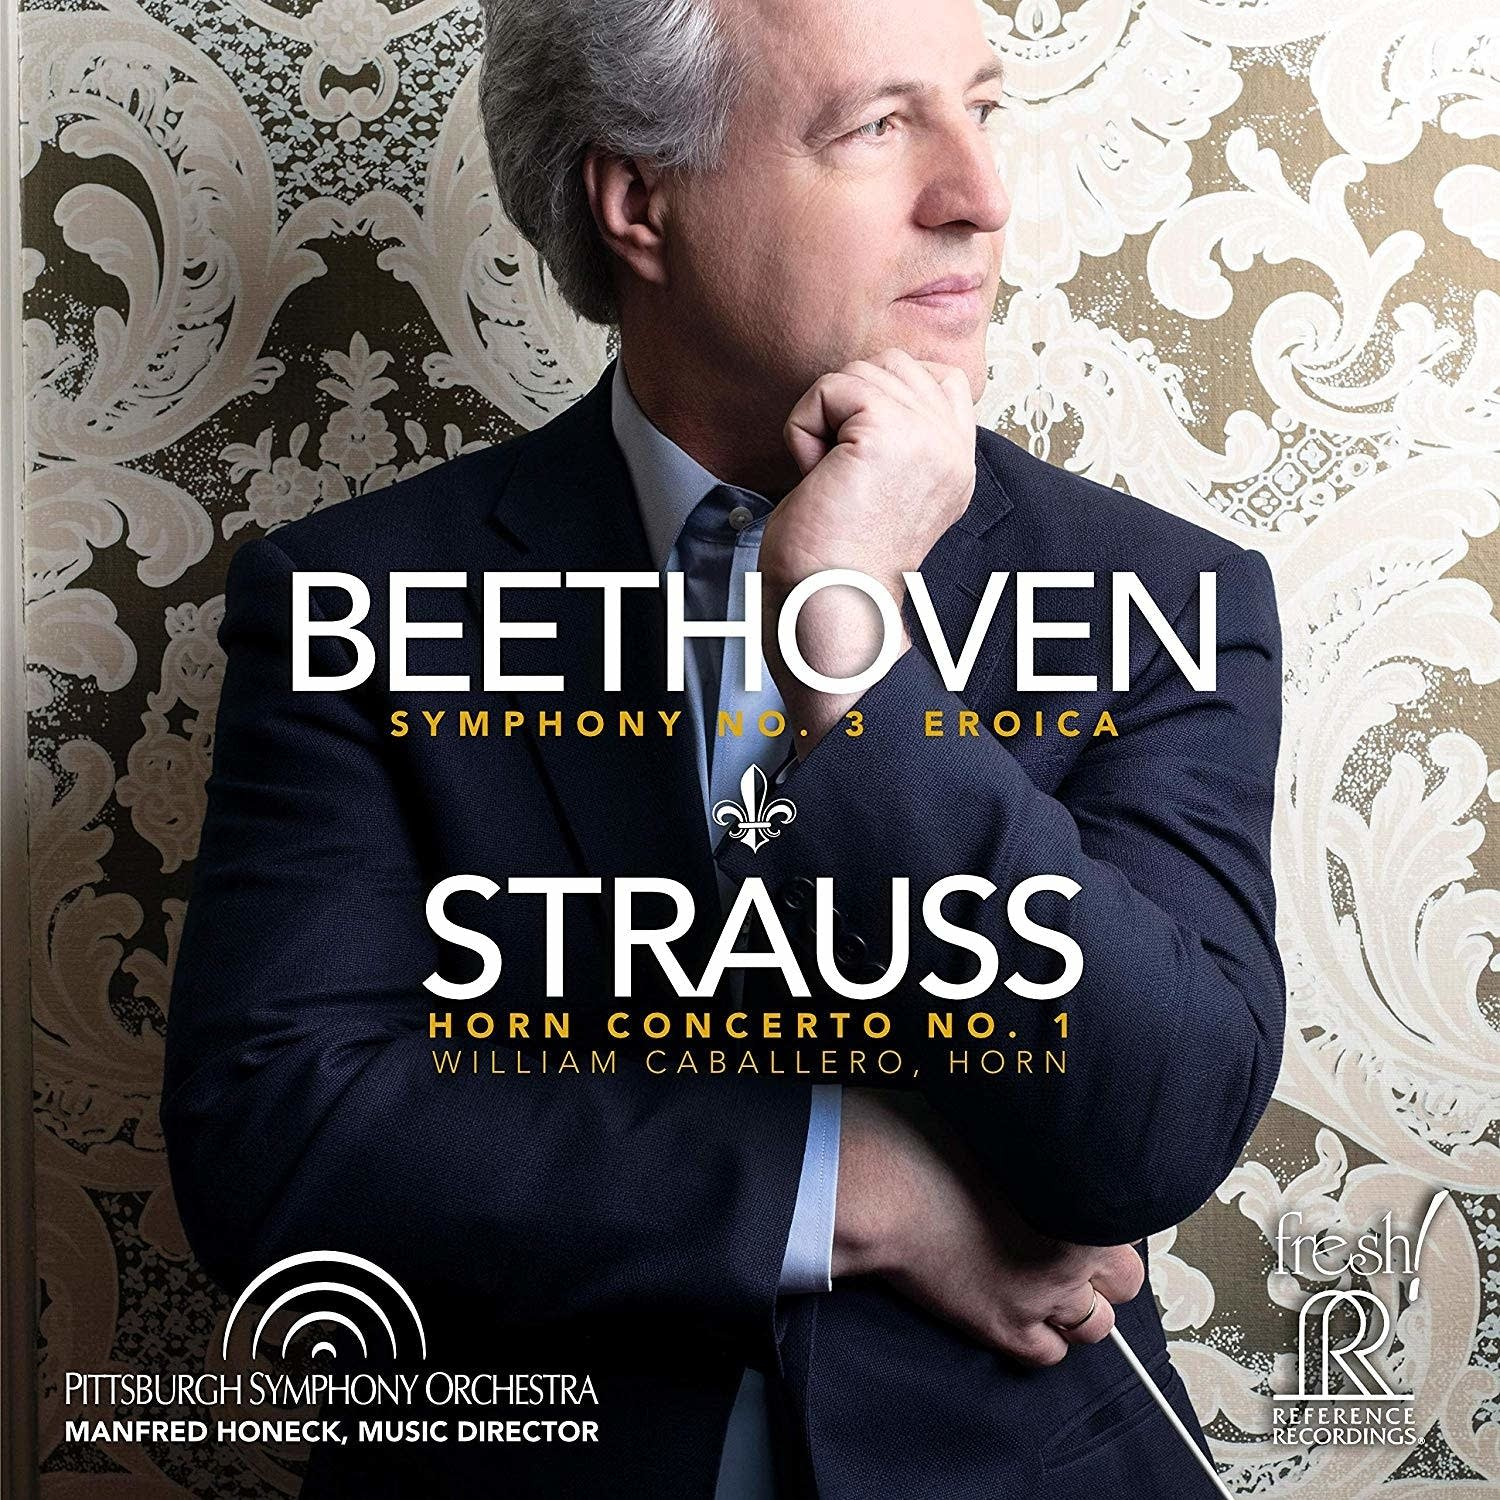 Manfred Honeck and the Pittsburgh Symphony Orchestra: 'Beethoven/Strauss'